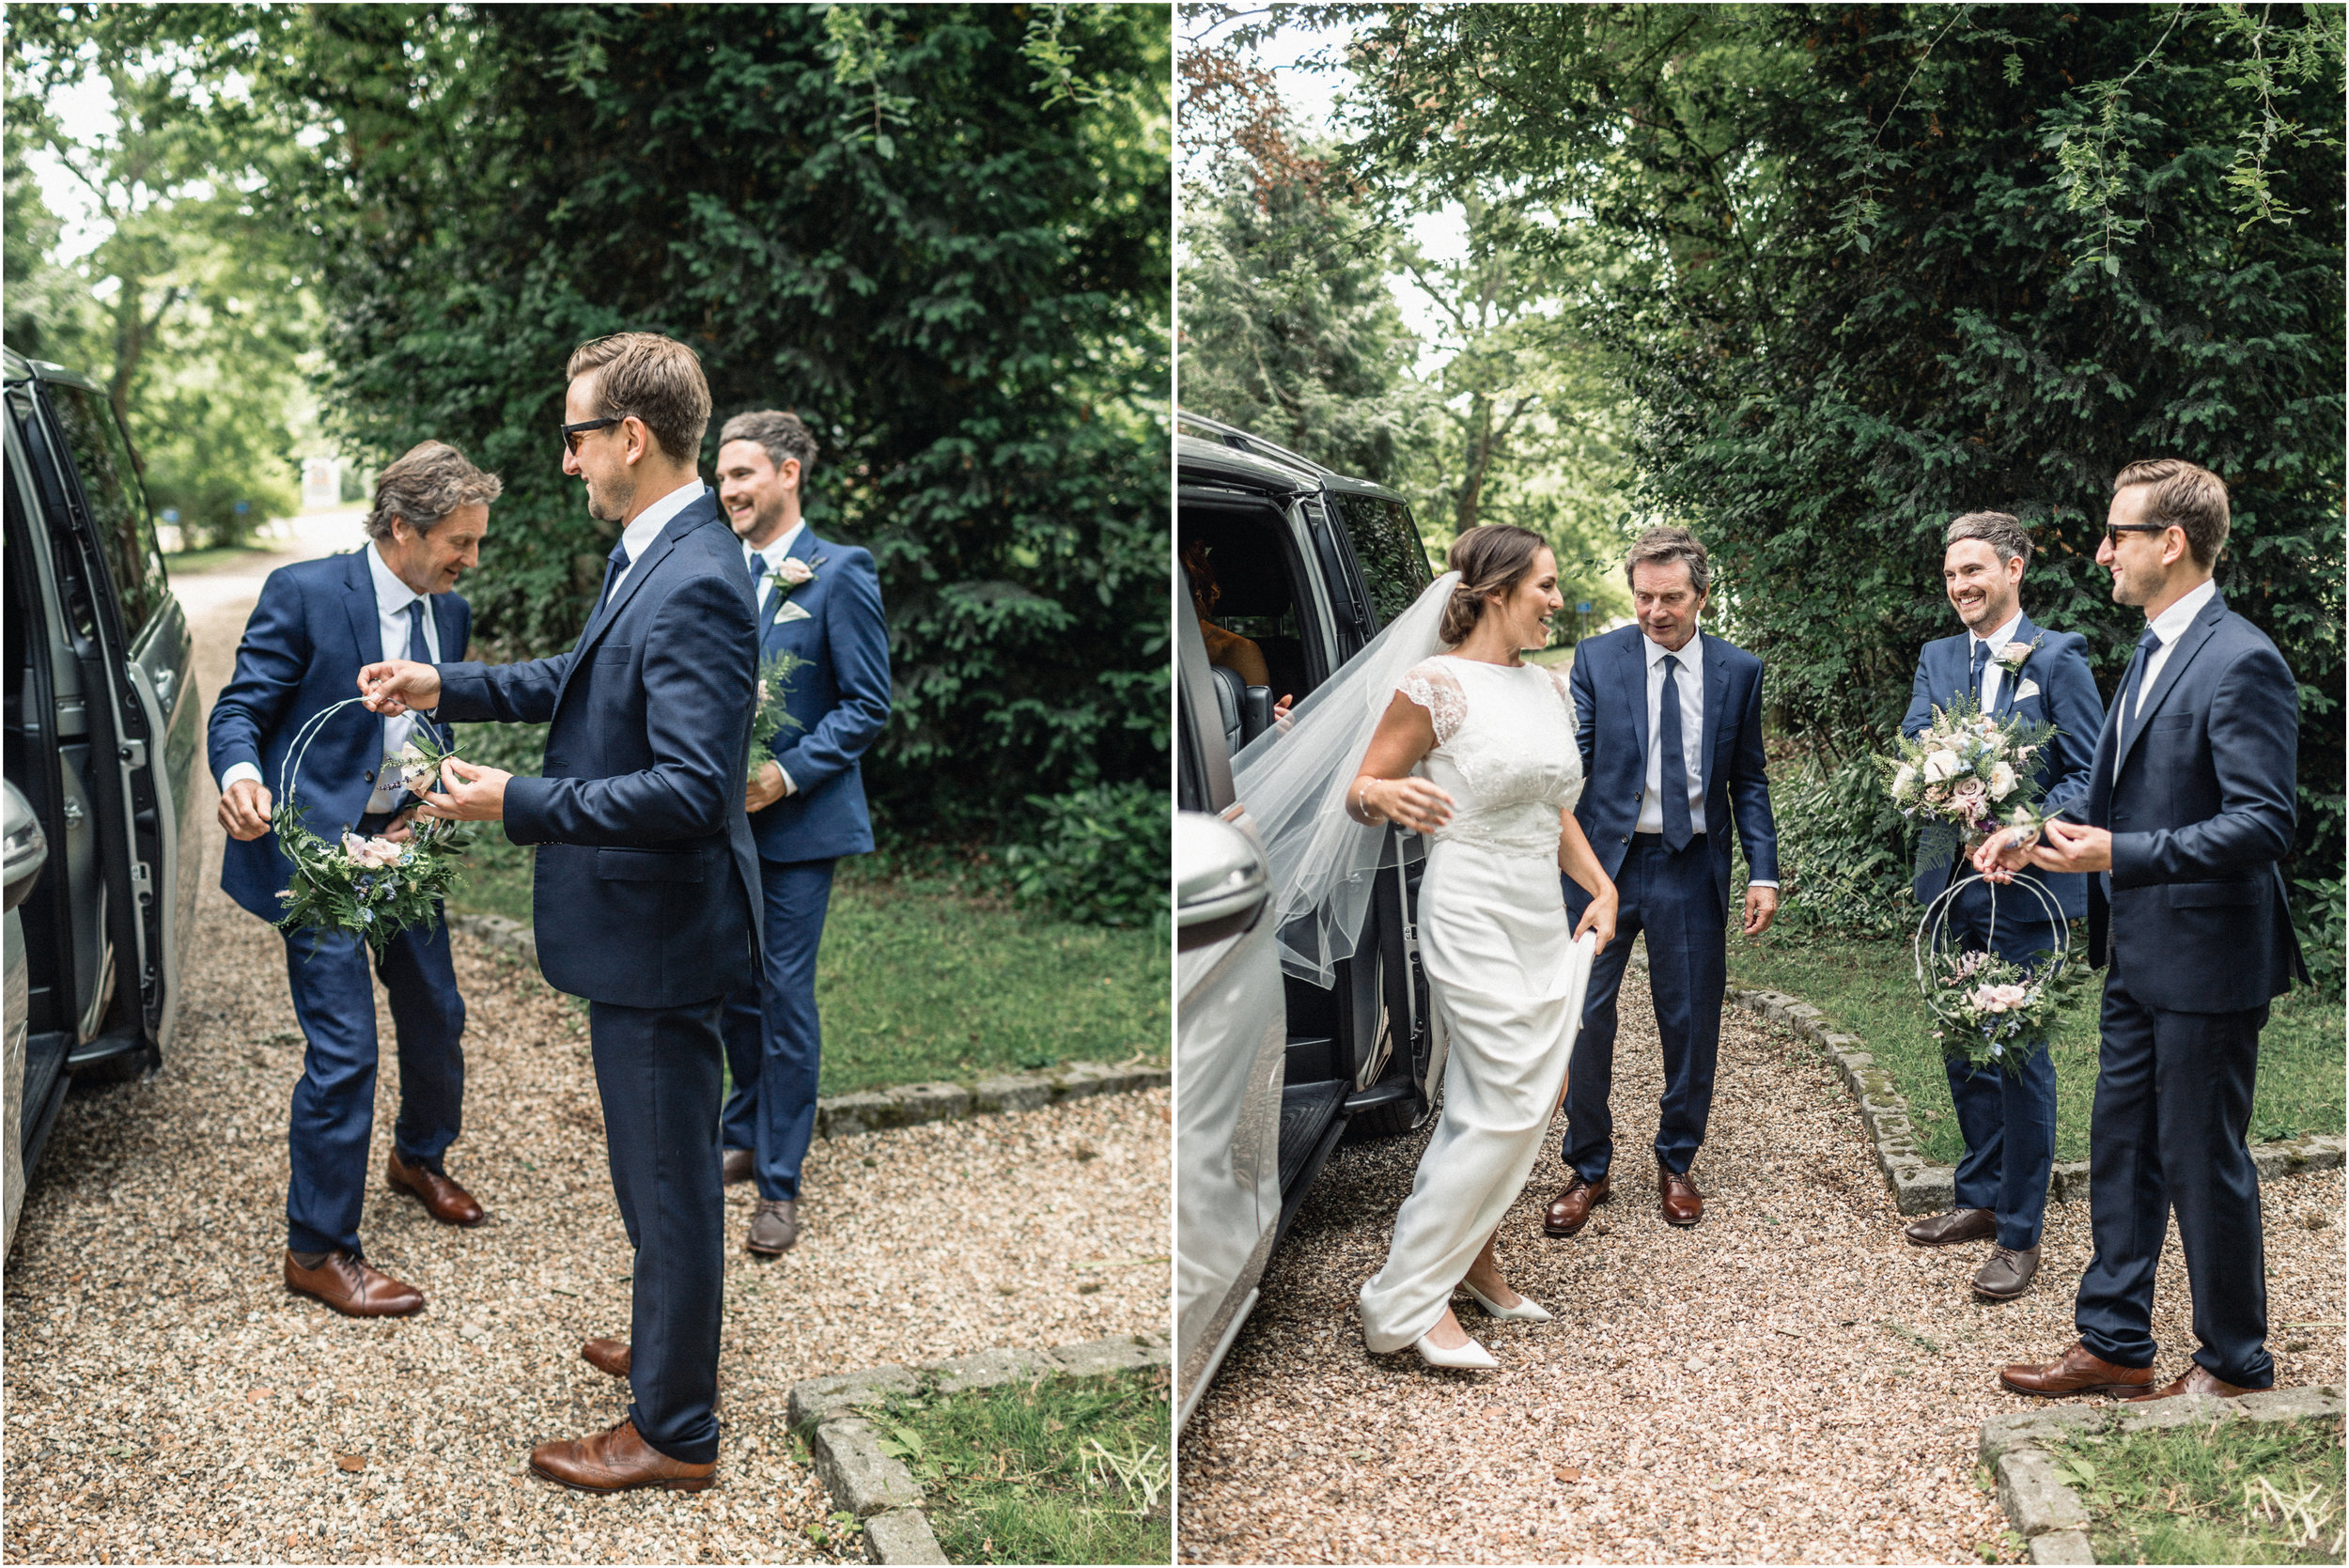 Rebecca Searle Photography Wedding 36.jpg